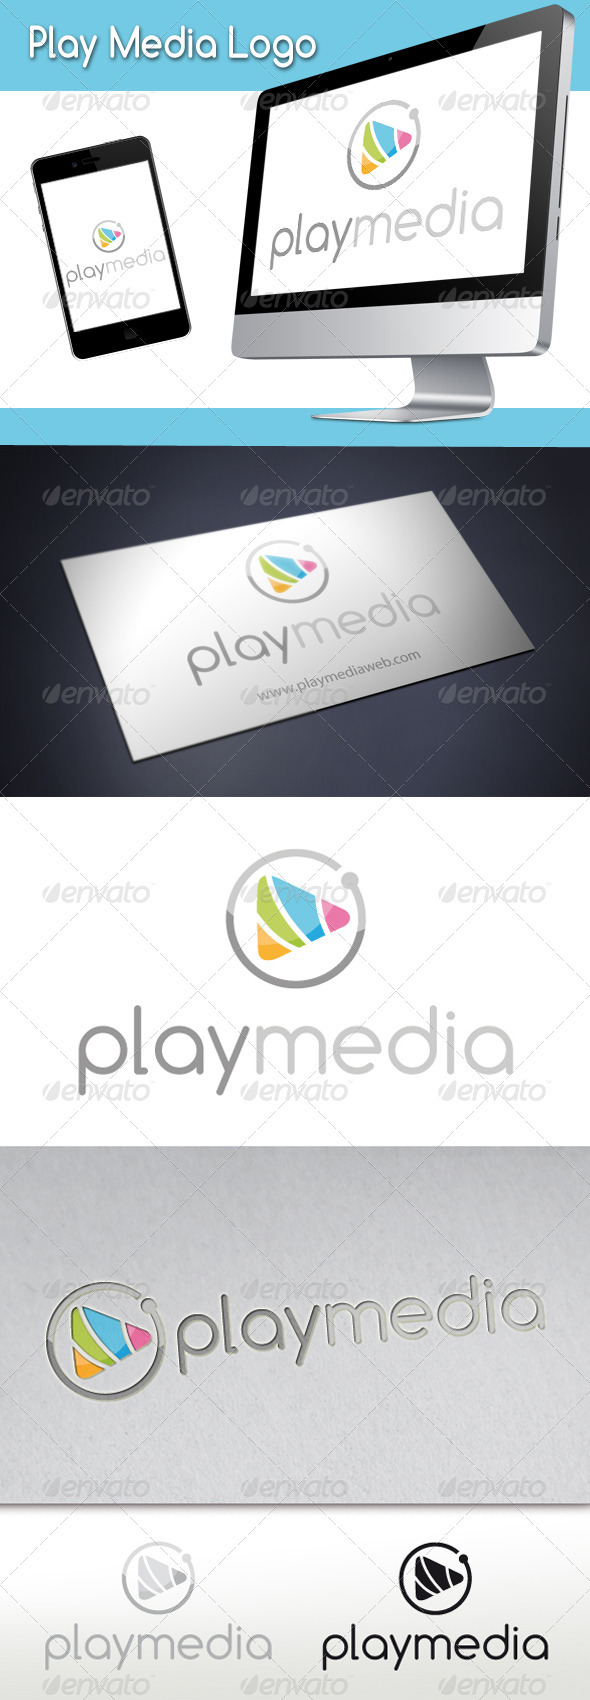 Play Media Logo - Vector Abstract